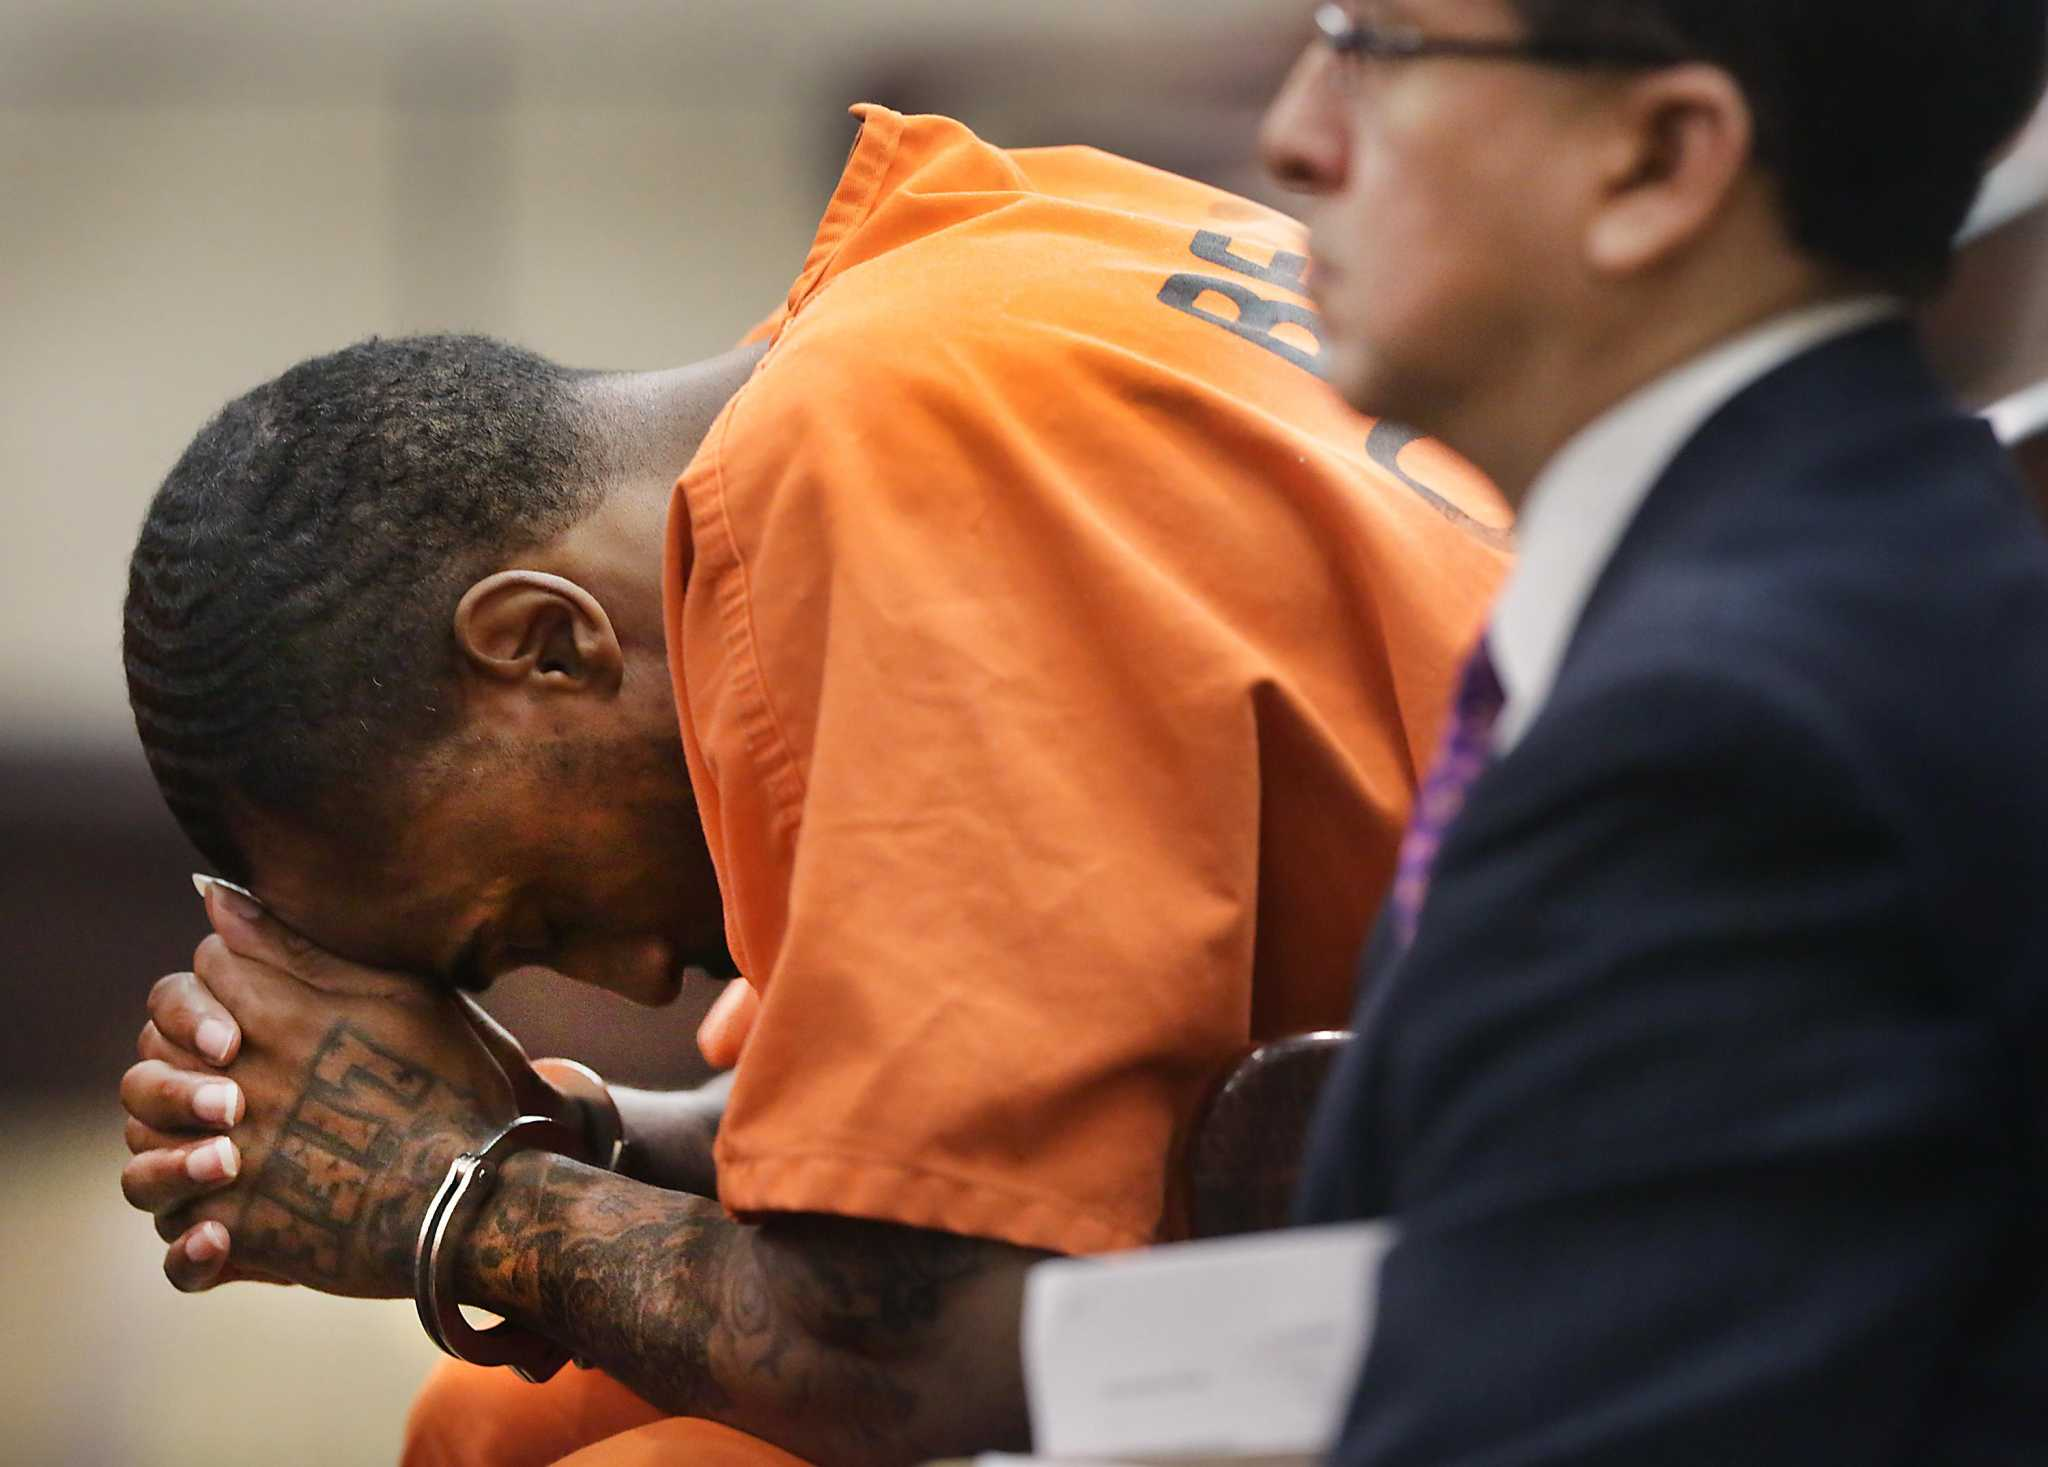 San Antonio man who shot girlfriend in head while he held baby sentenced to life in prison - San Antonio Express-News